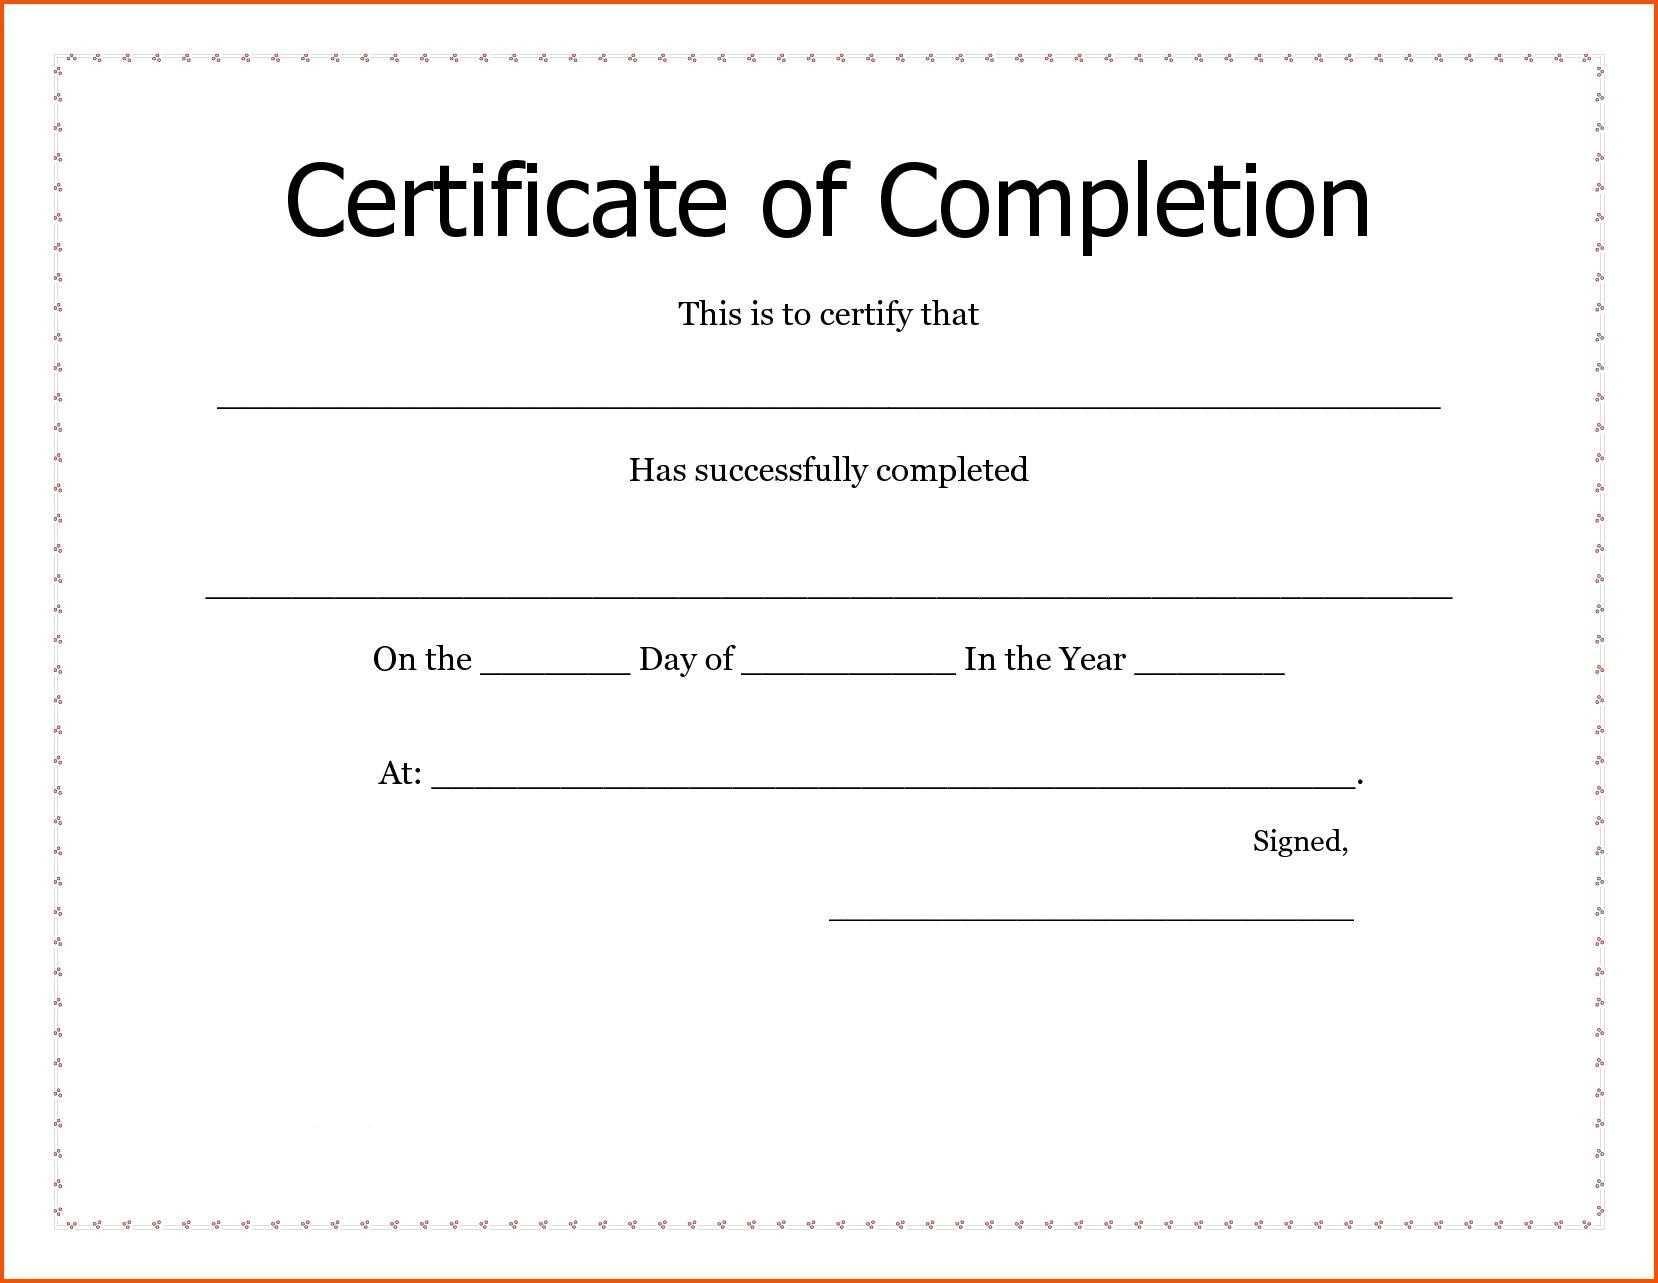 035 Free Certificate Of Completion Template Word Sample Text Throughout Certificate Of Completion Template Word